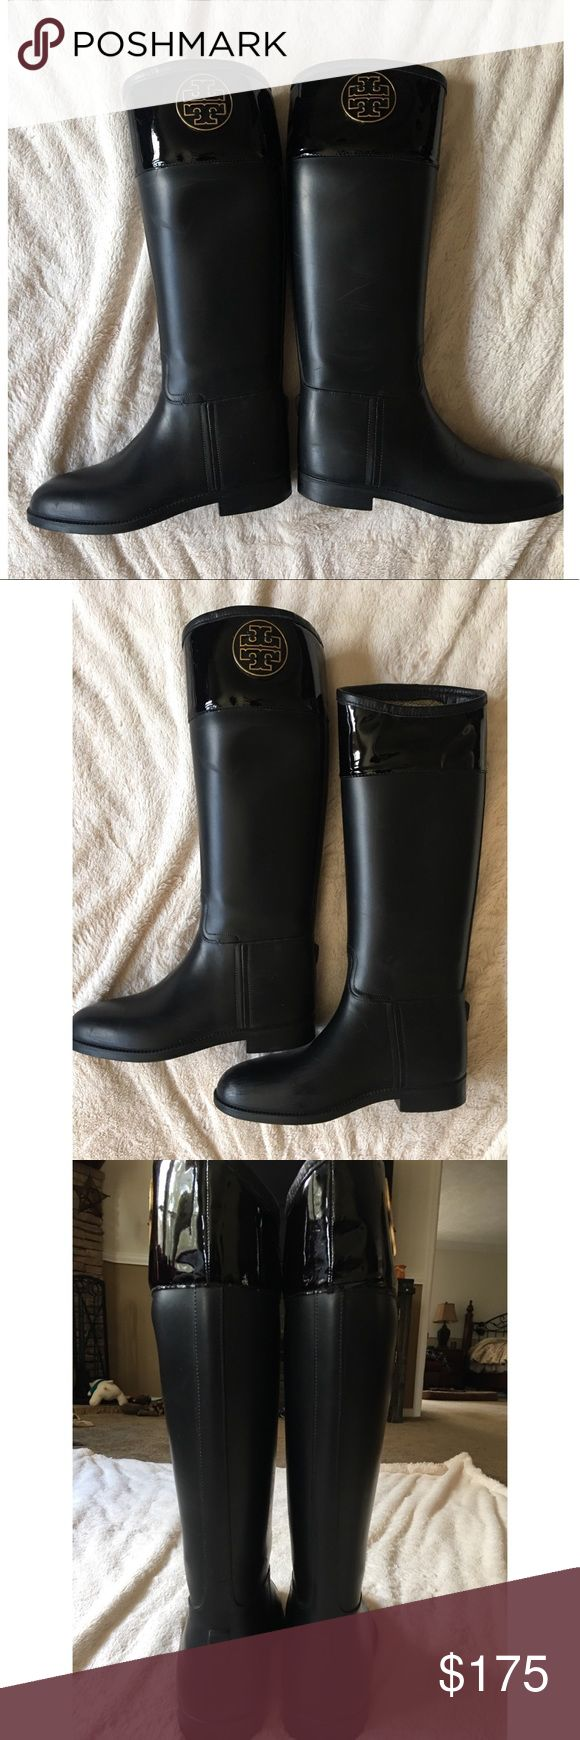 Tory Burch Rain Boots Tory Burch Rain Boots. Lightly used but in great condition. Good heavy duty boots for rain and snow. They are black with a gold Tory logo on each boot. Size 8 and coming from a smoke-free home. They are no longer making this style and they are beautiful!!! No low ball offers please :) Tory Burch Shoes Winter & Rain Boots